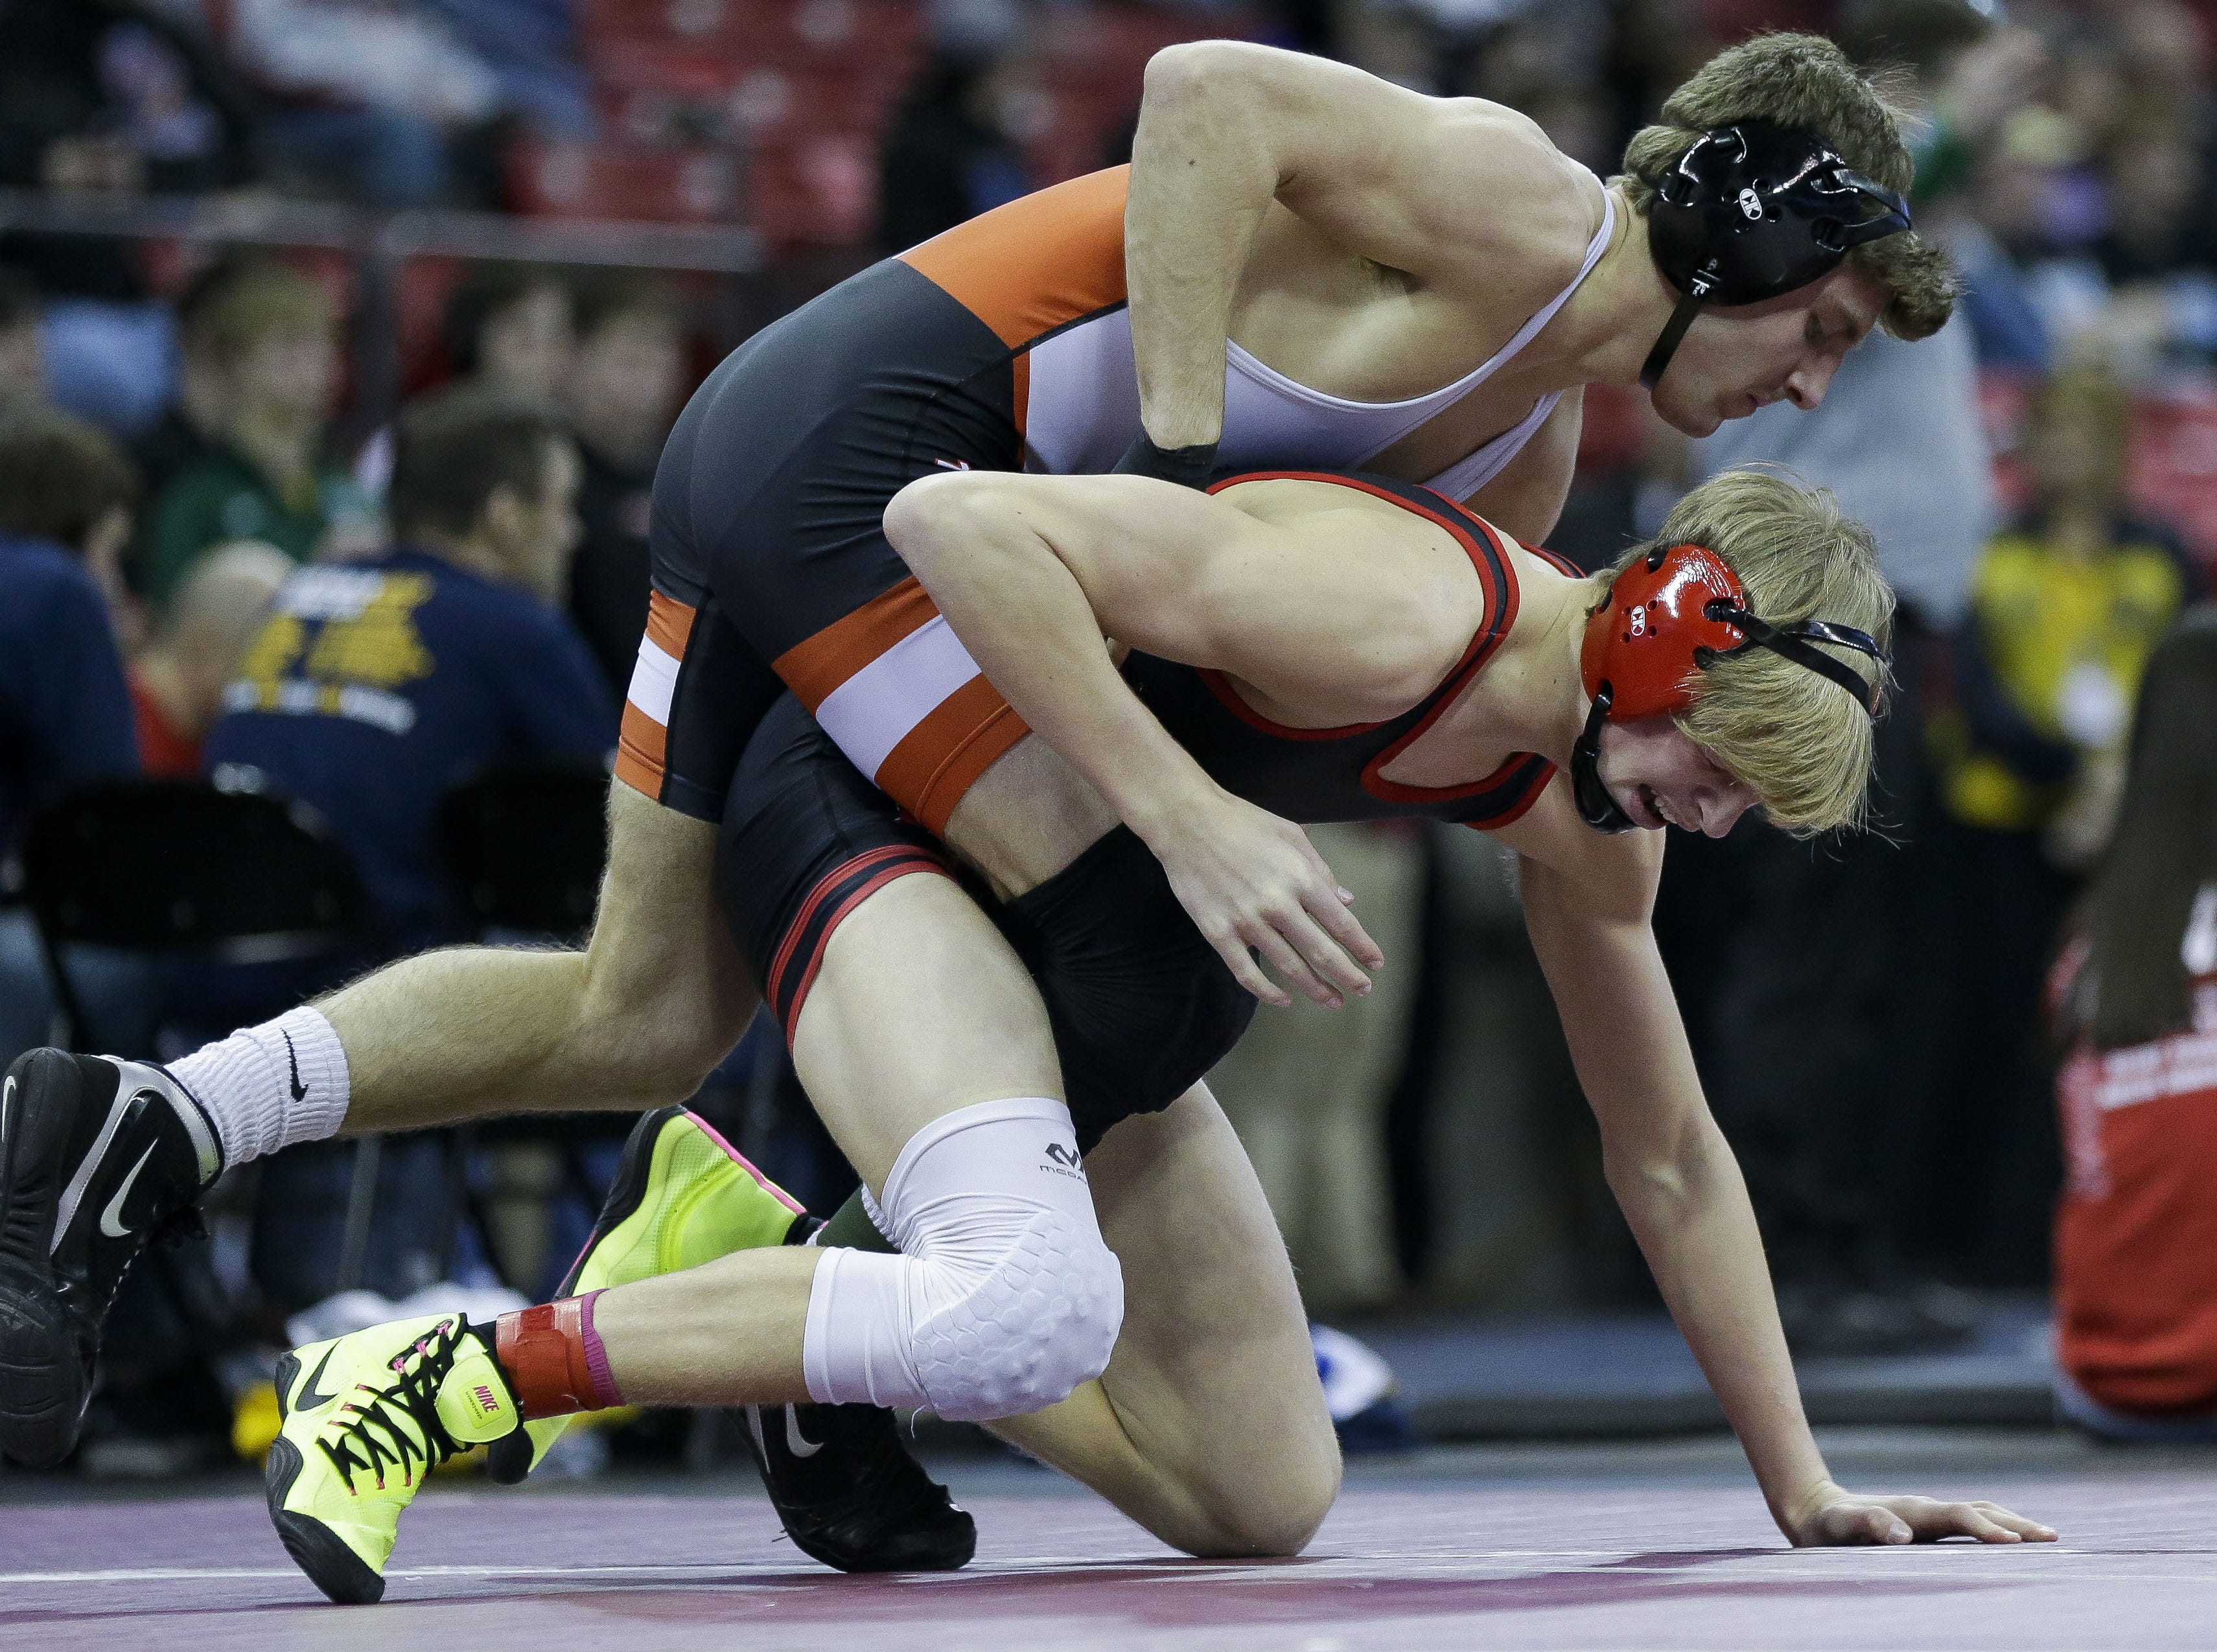 Marshfield's Caden Pearce wrestles against Kimberly's Tucker Smith in a Division 1 145-pound preliminary match during the WIAA state wrestling tournament on Thursday, February 21, 2019, at the Kohl Center in Madison, Wis. Tork Mason/USA TODAY NETWORK-Wisconsin